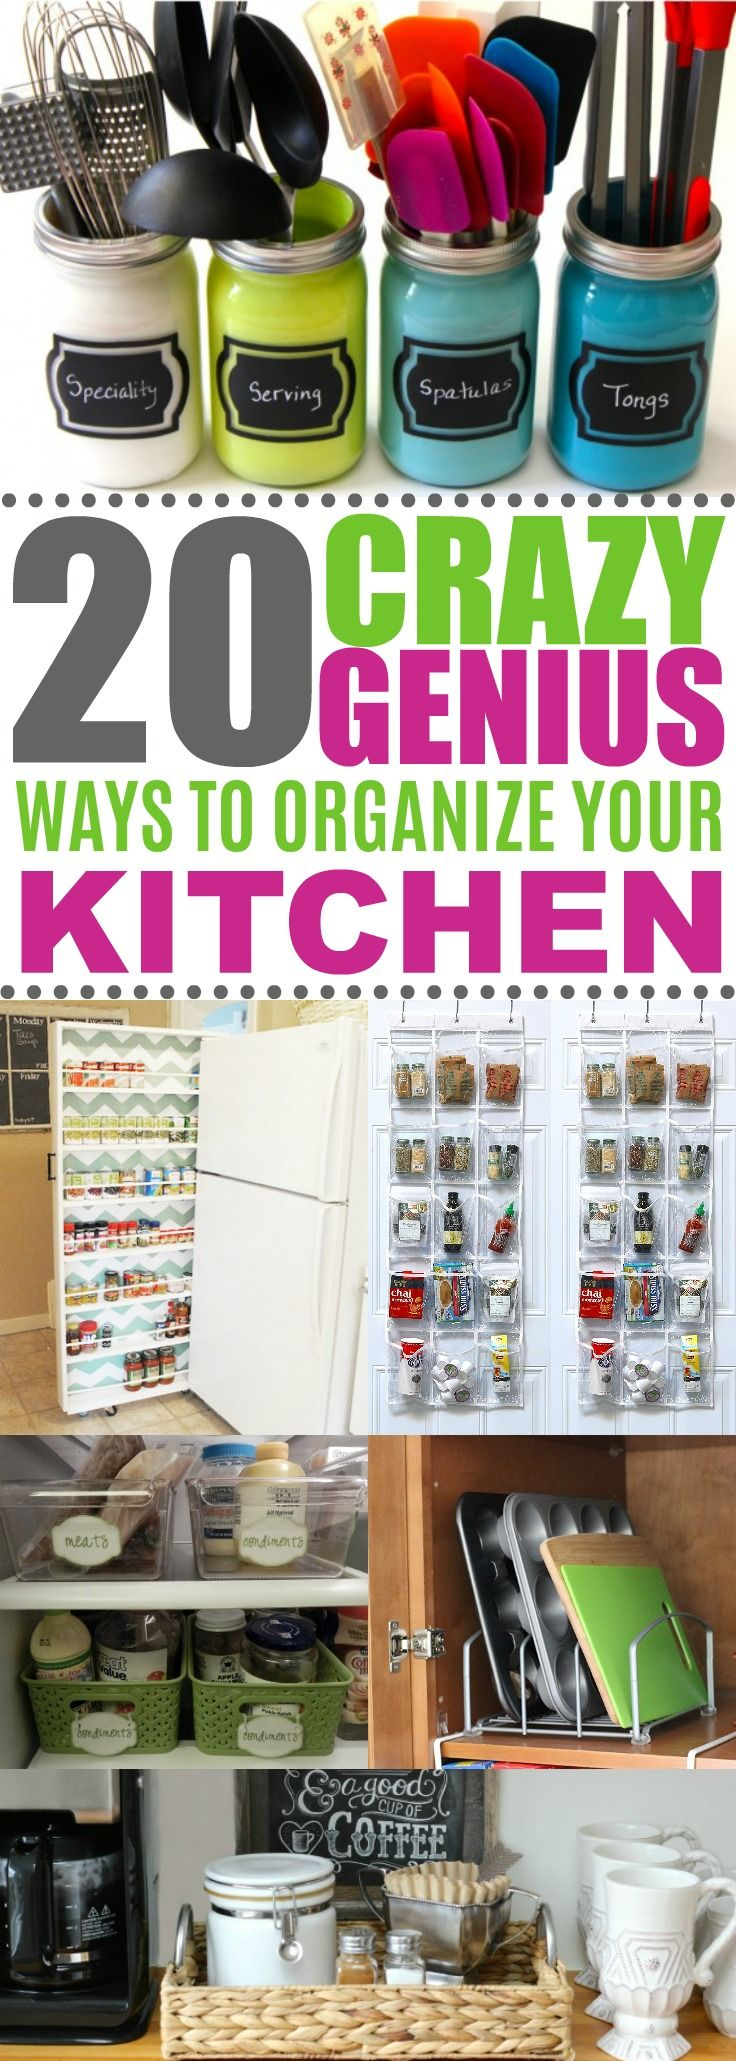 These 20 kitchen organization ideas are SO CREATIVE! Can't wait to try these easy DIY organization projects and products. These tips & hacks for the home will declutter everything in my kitchen! Definitely pinning!